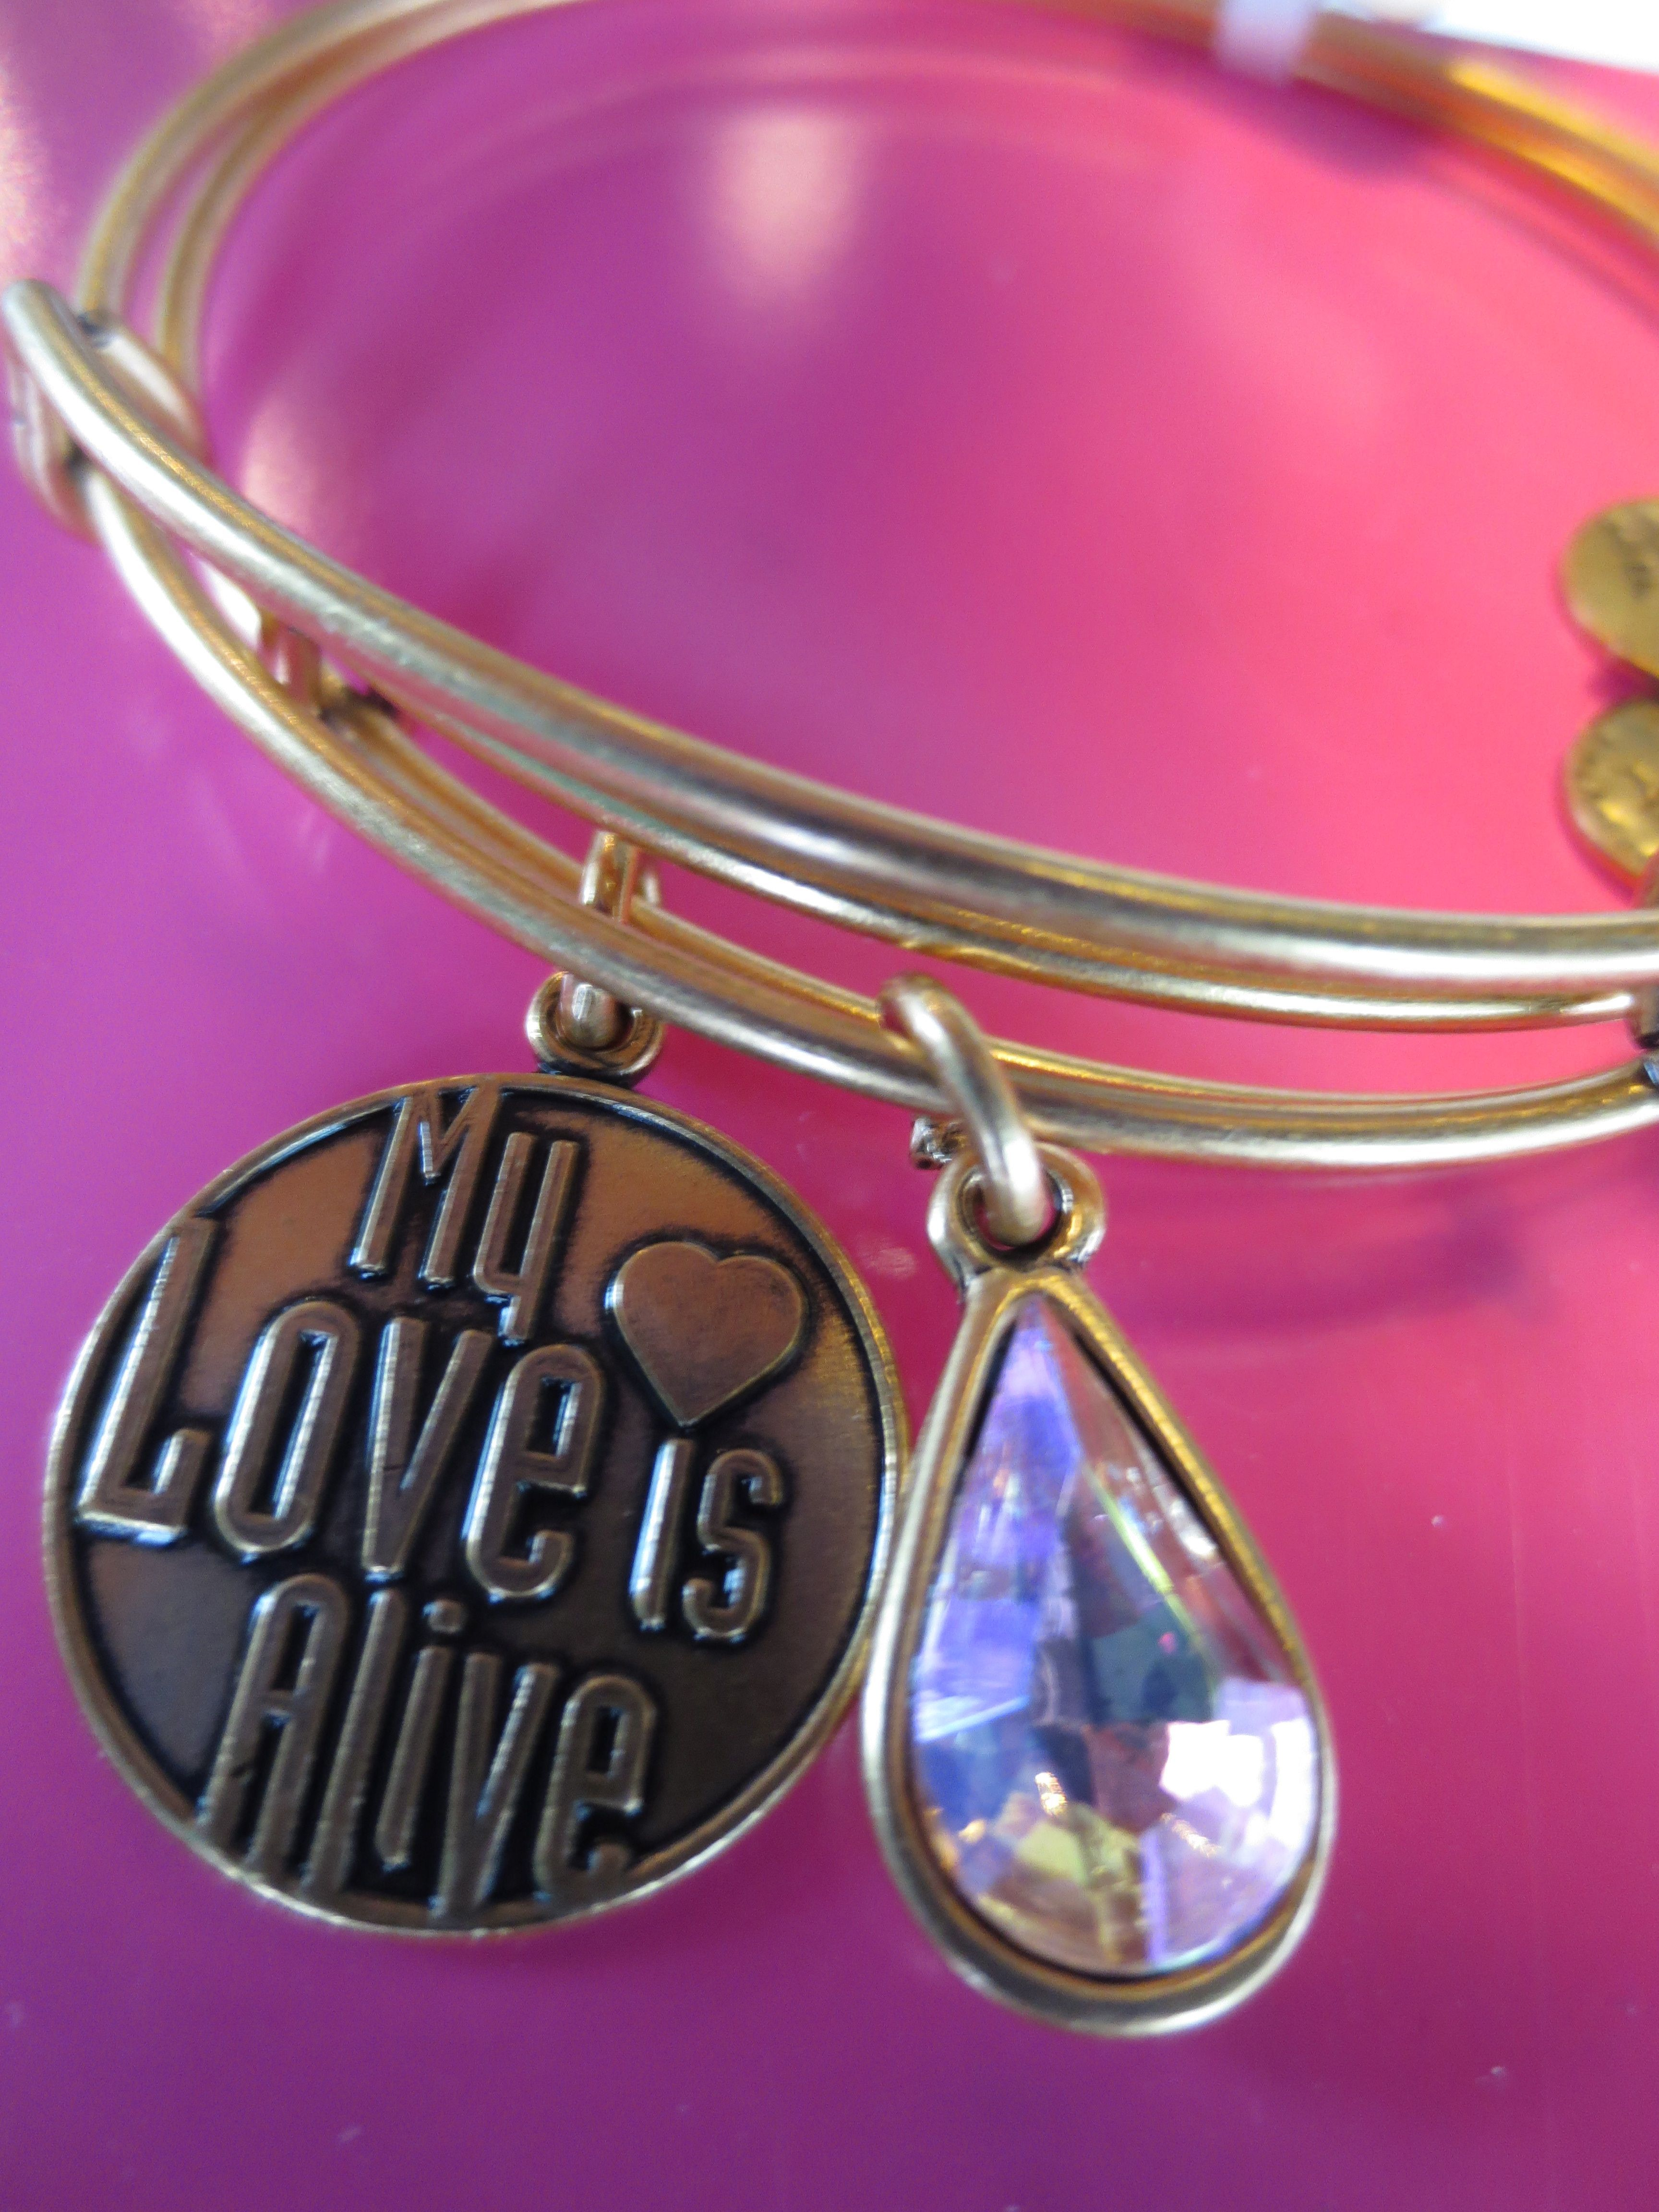 3a9f2cc7c Tuesday's Children (My Love is Alive bangle) & Living Water International  (Living Water for Women bangle) #CharmedByCharity